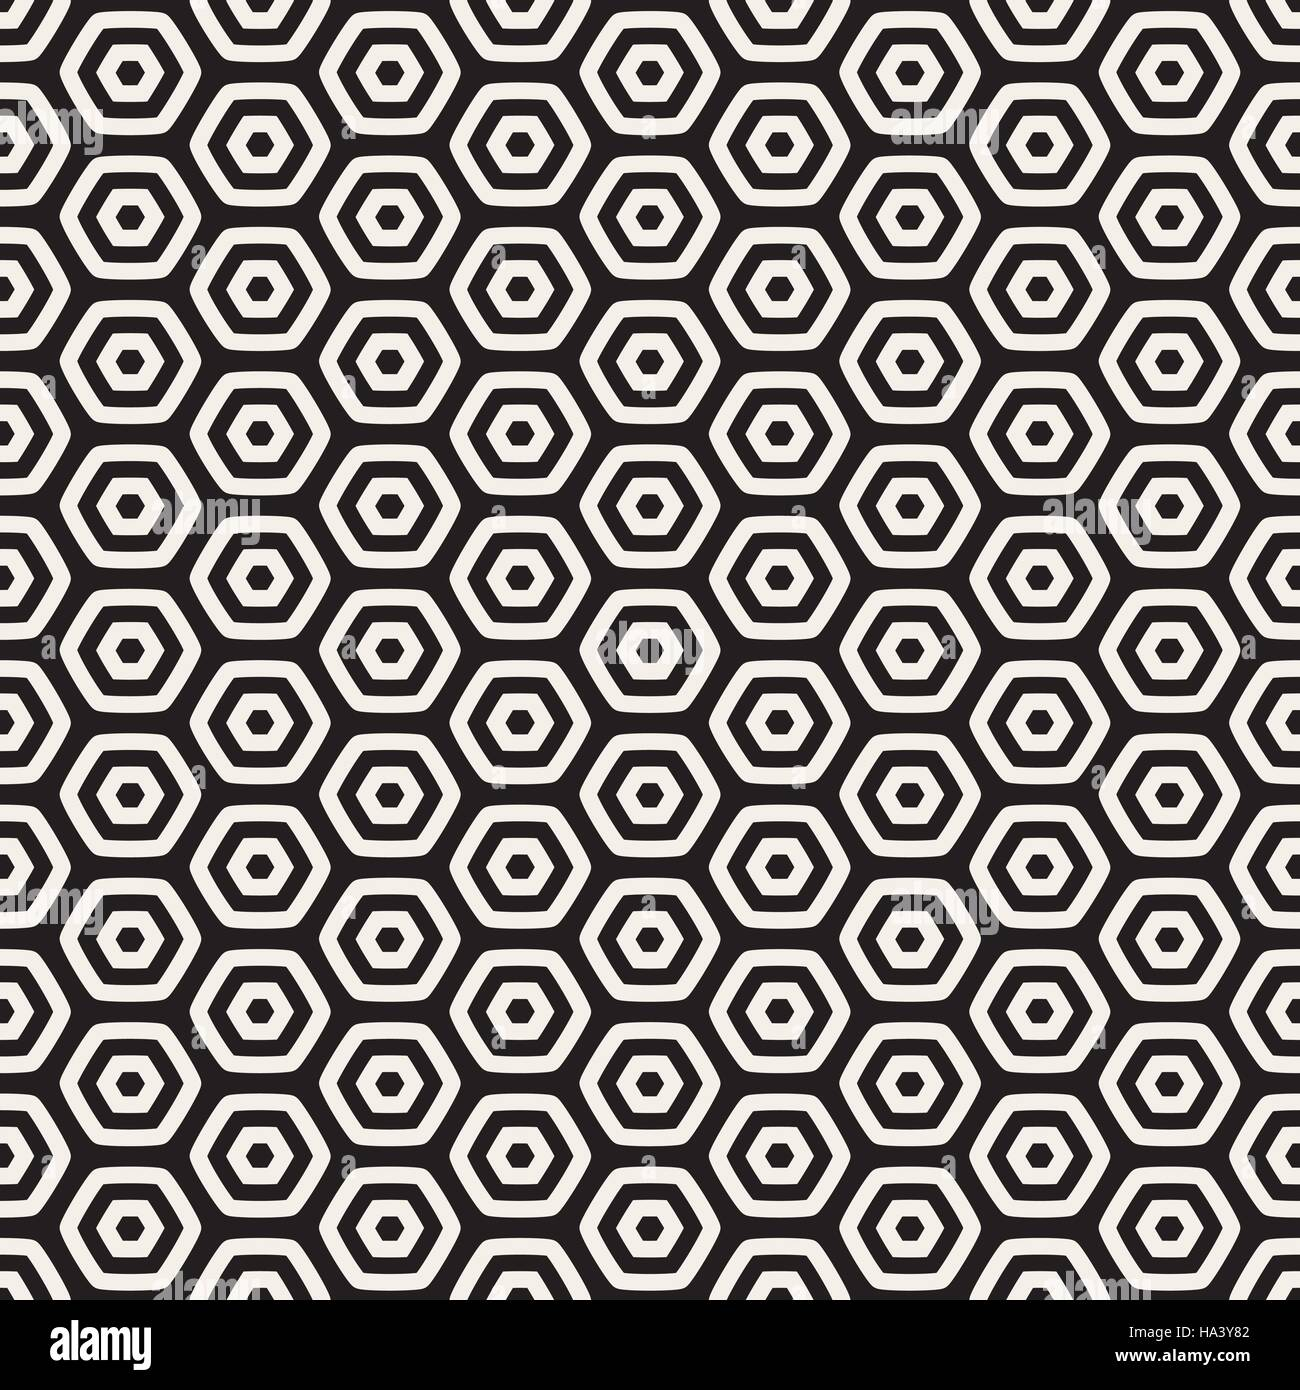 Vector Seamless Black And White HoneyComb Grid Geometric Pattern